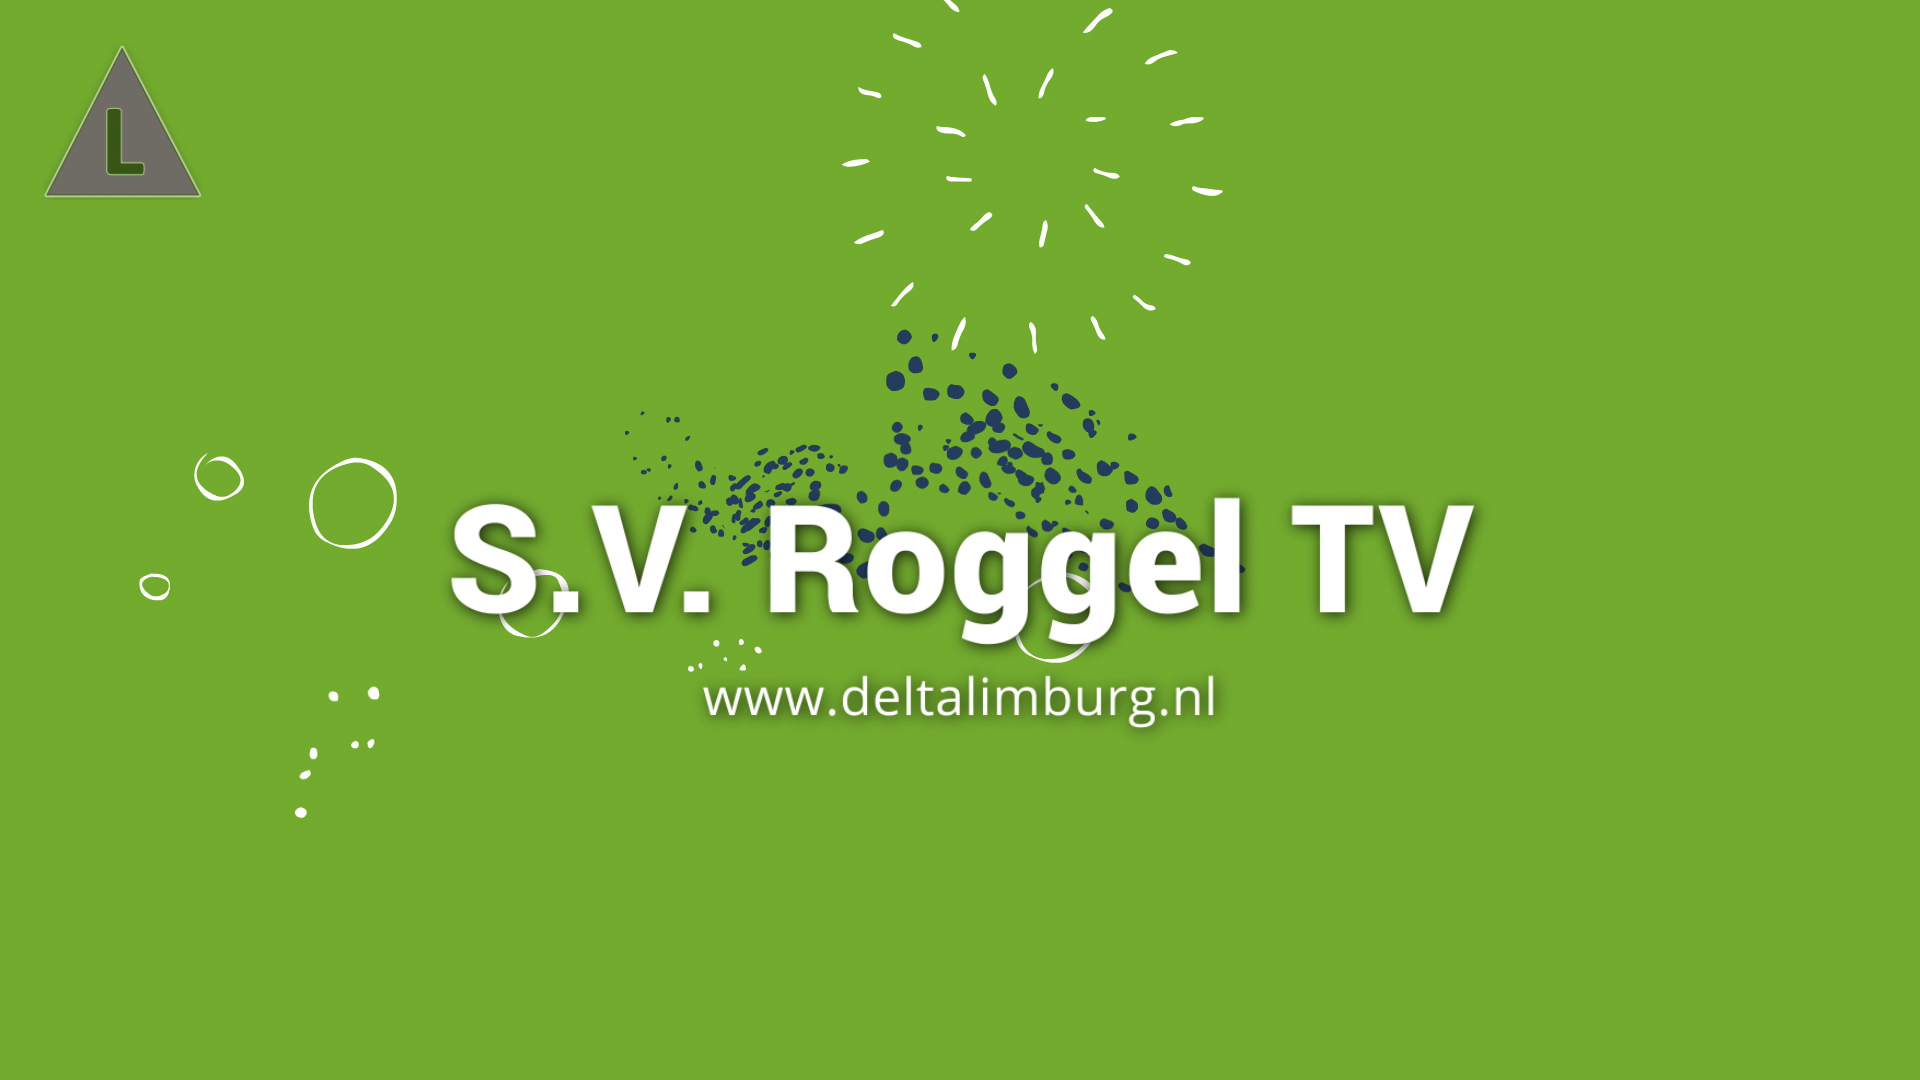 Aflevering 1 - November 2019 -  S.V. Roggel TV